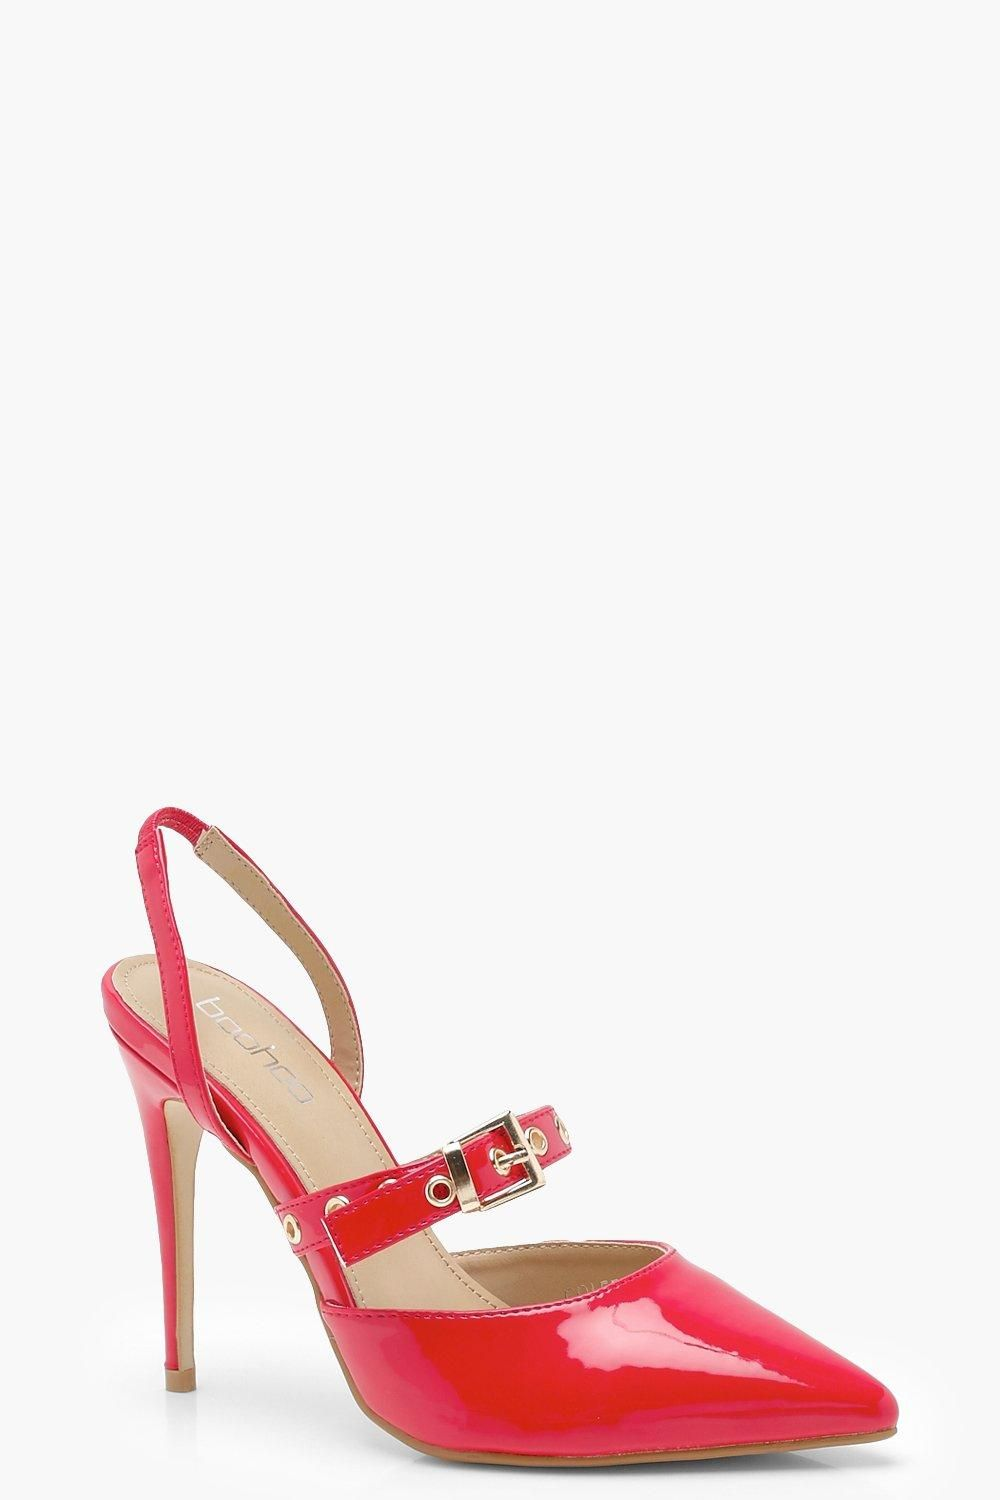 Patent Pointed Sling Back Heels Boohoo Heels Pretty High Heels Shoe Collection